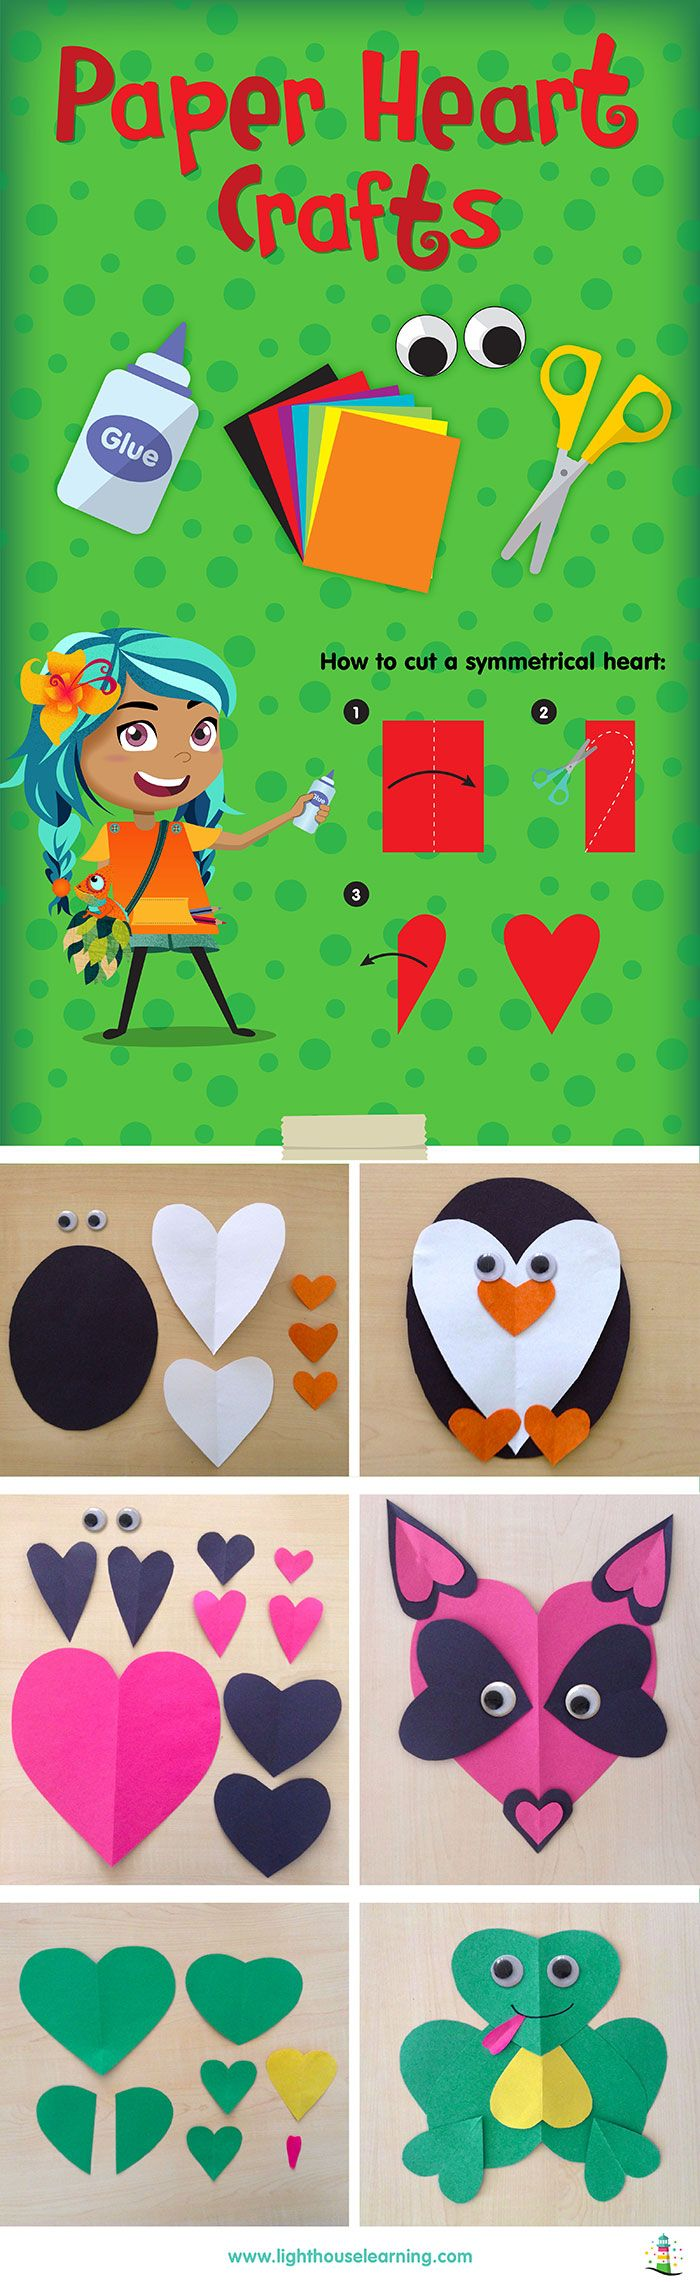 3 cute animals made of paper hearts - simple kids' craft for Valentine's day!